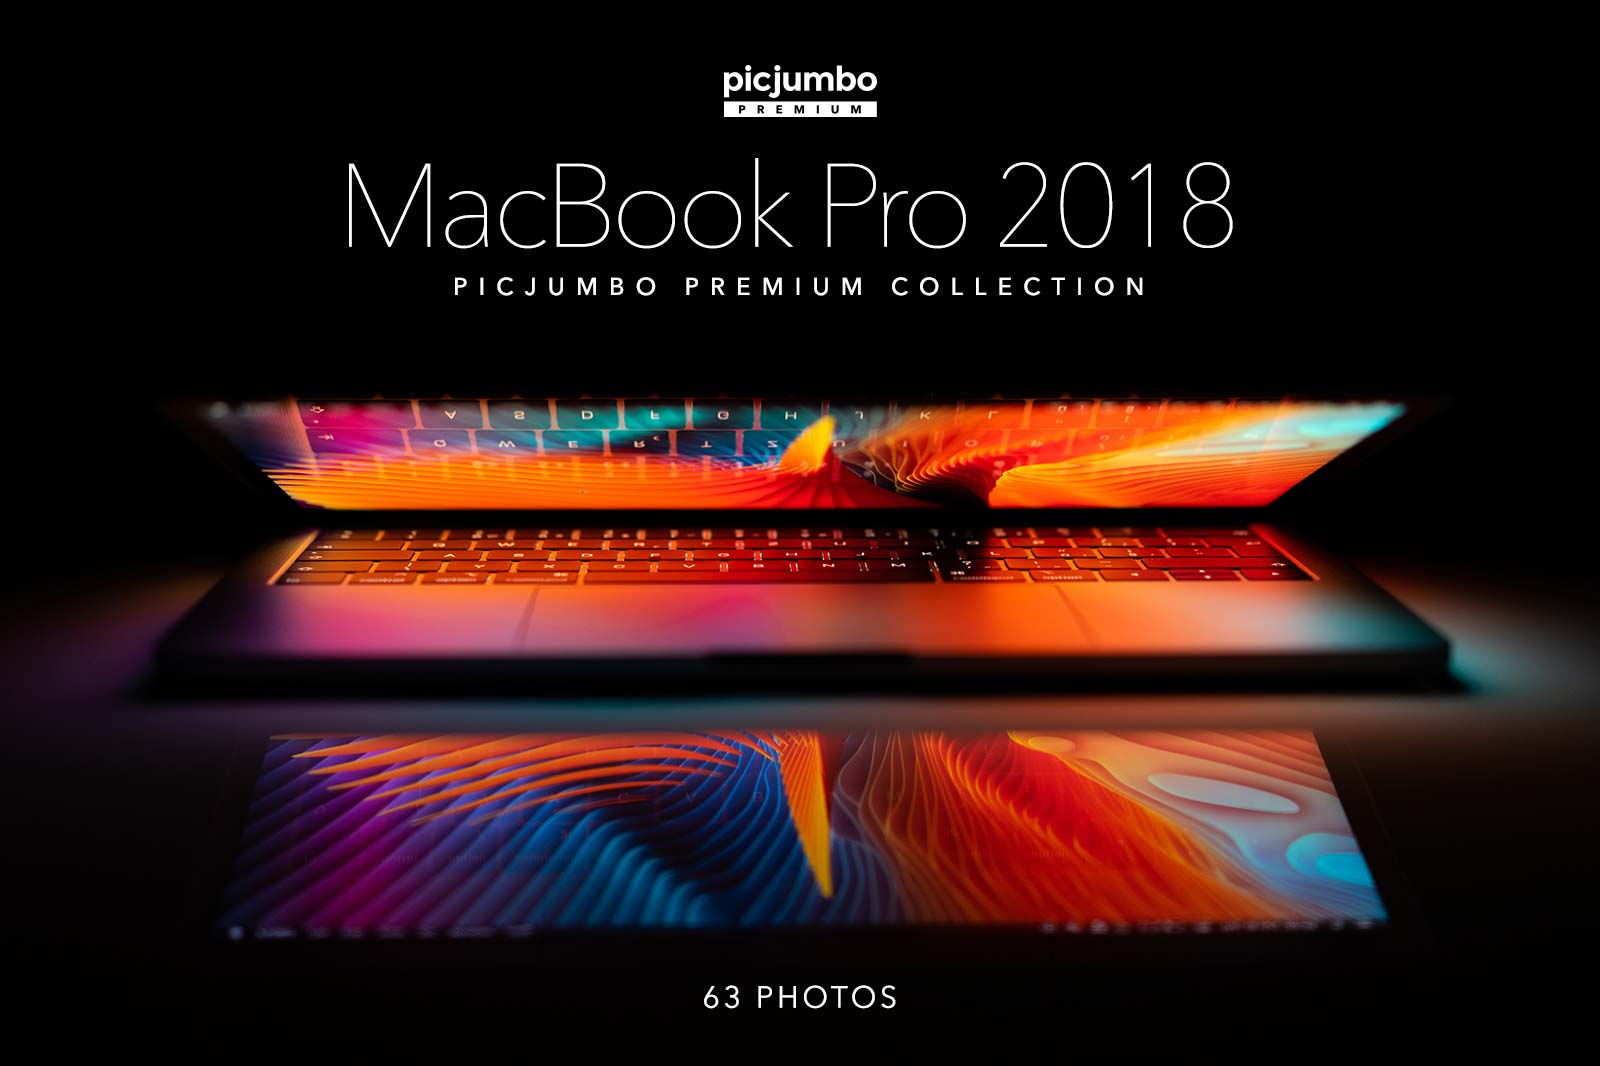 Join PREMIUM and get full collection now: MacBook Pro 2018